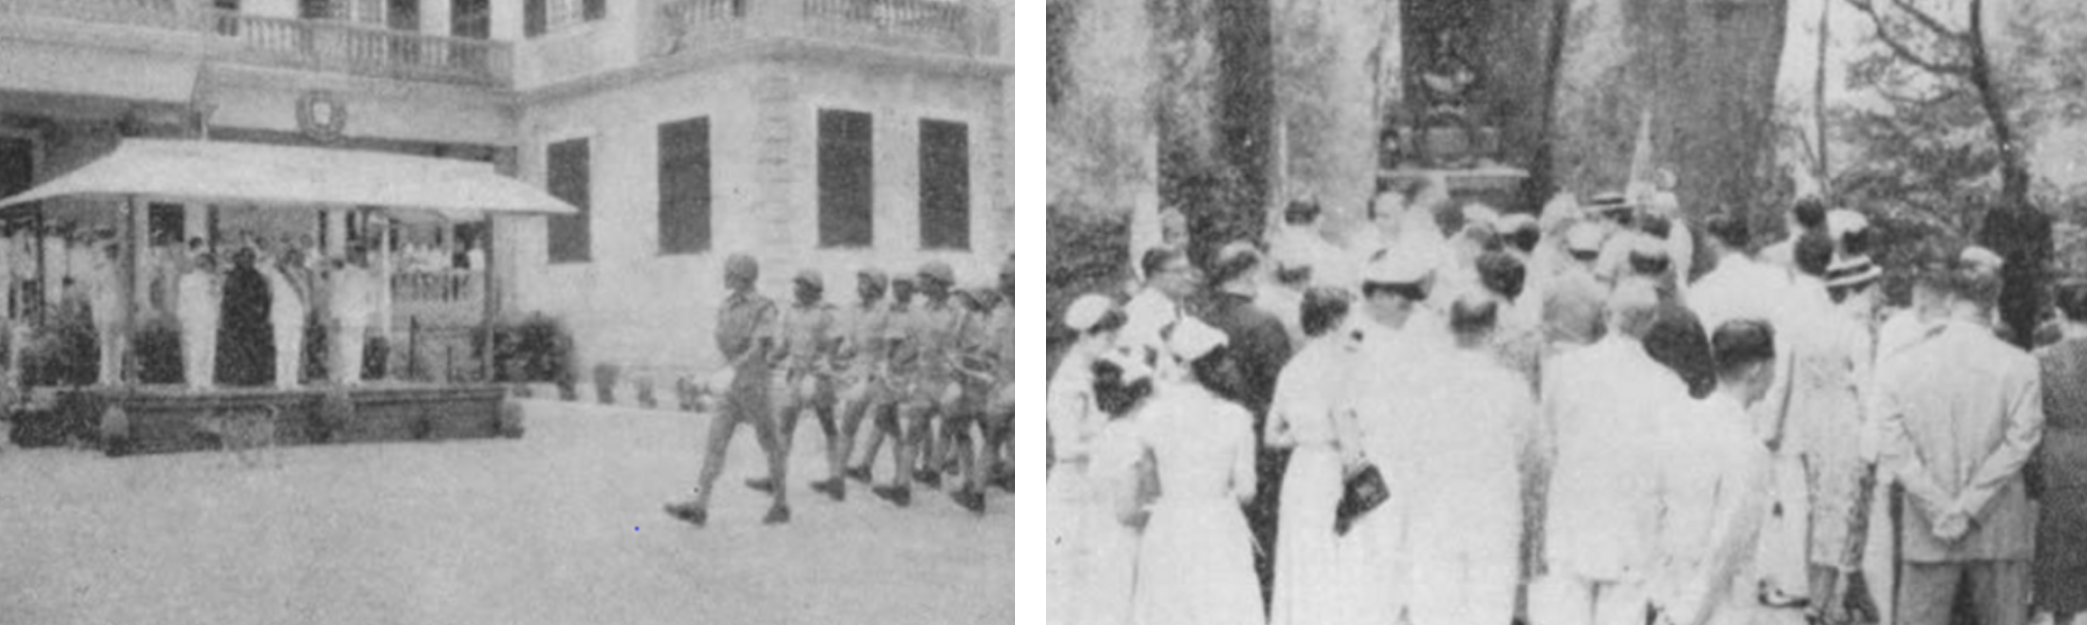 June 10, 1955: Military Parade at the Governors Palace and Pilmigrage to Camoes Grotto